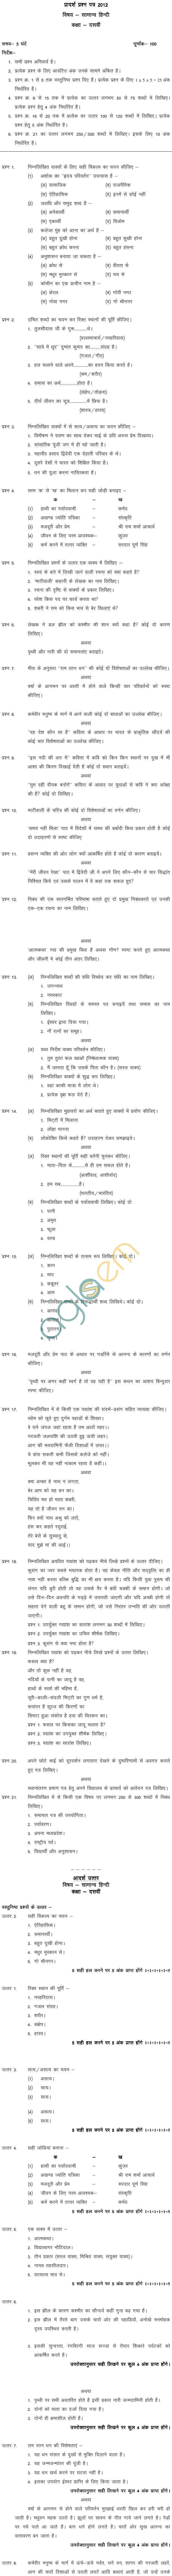 MP Board Class X Hindi General Model Questions & Answers - Set 3